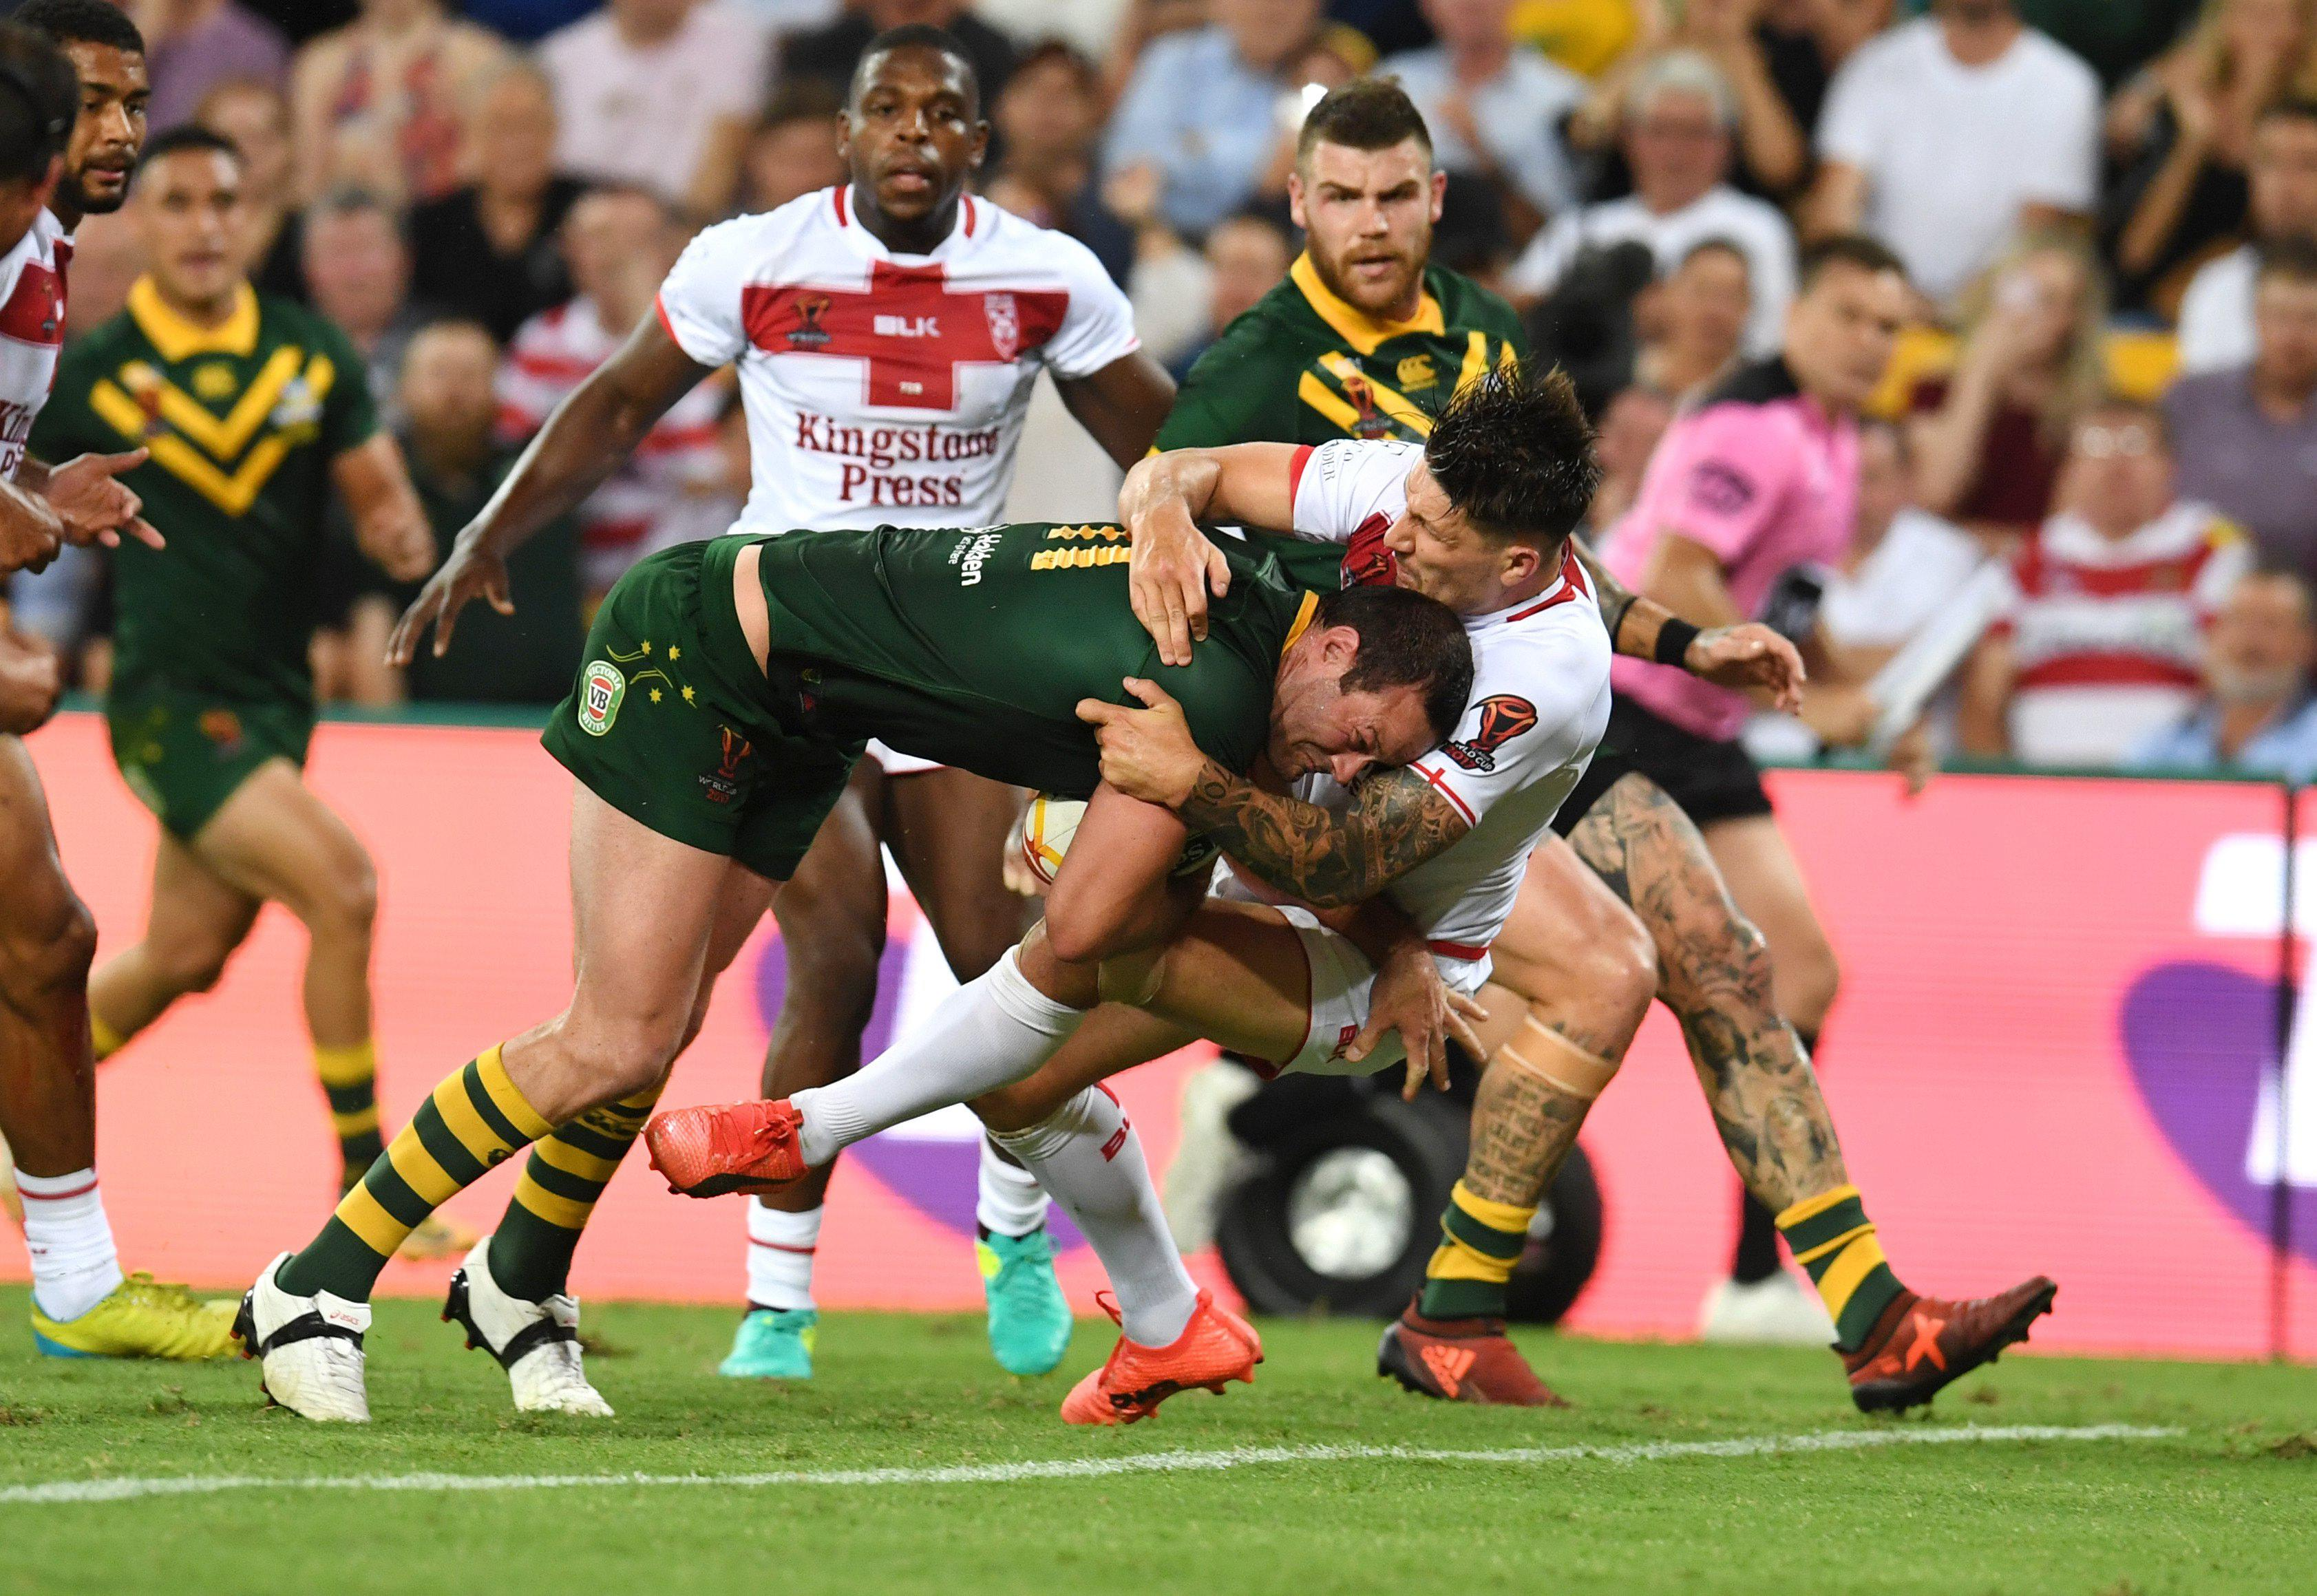 England just fell short in last year's Rugby League World Cup final to Australia